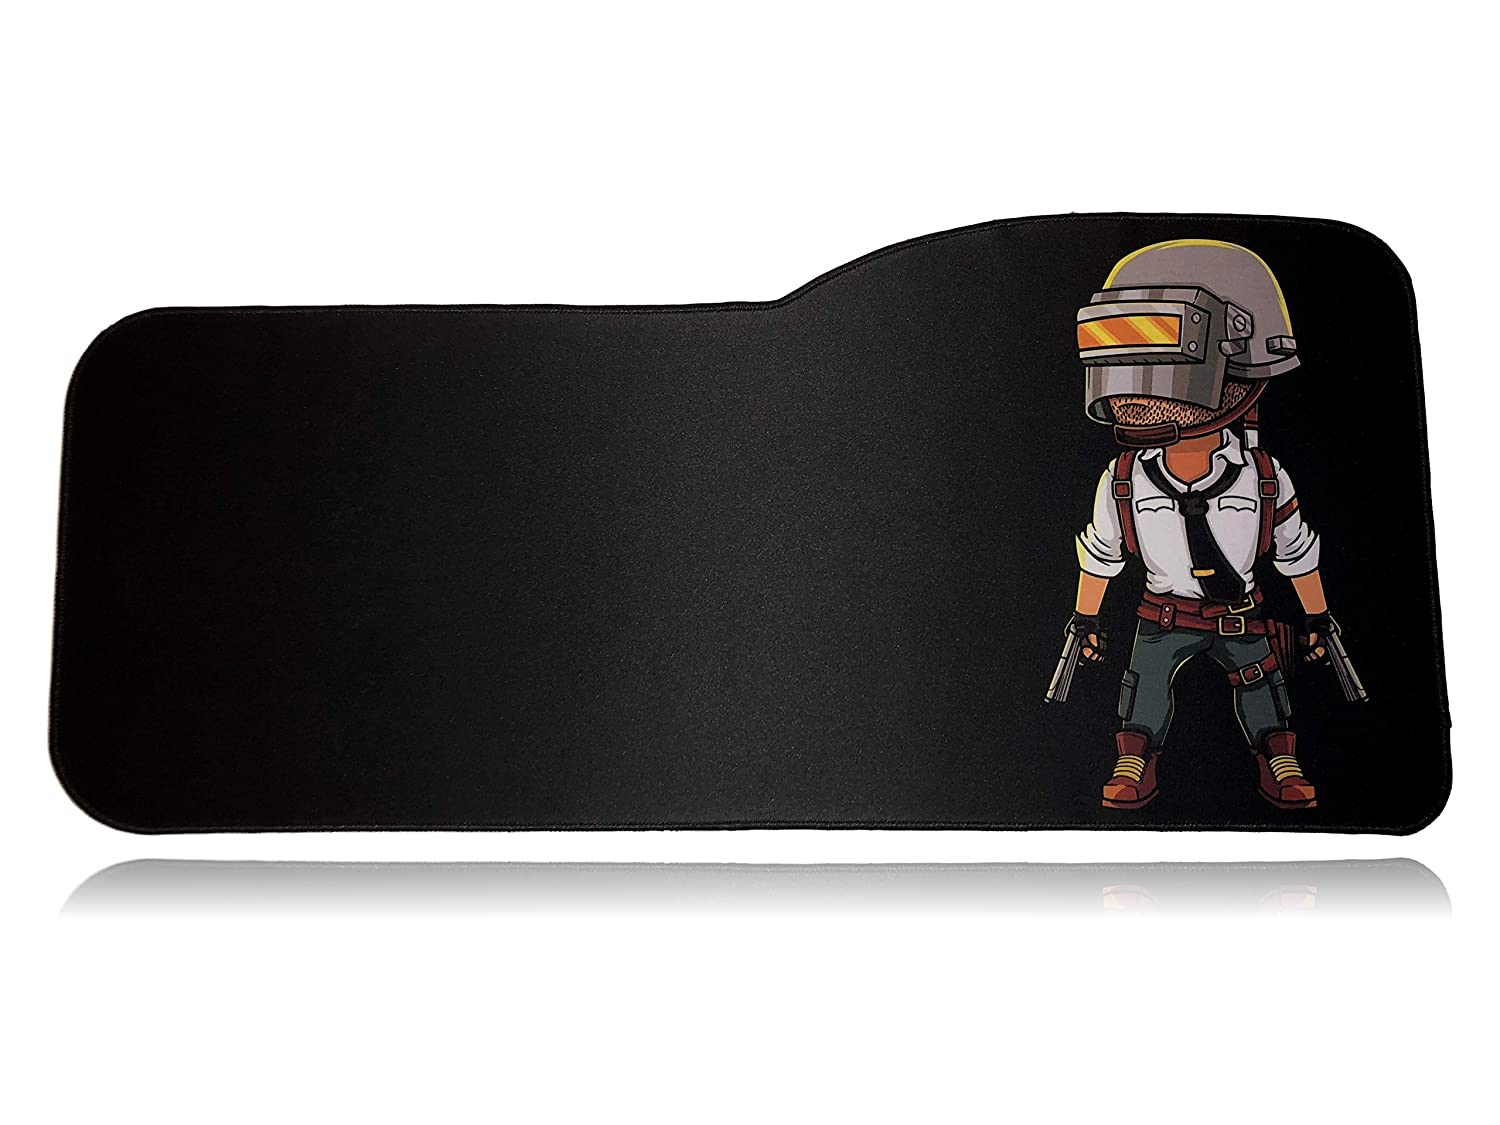 Stitched Edges Anti Slip Rubber 28.5 x 12.75 x 0.12 Extended Size Custom Gaming Mouse Pad Large Desk Mat Morty